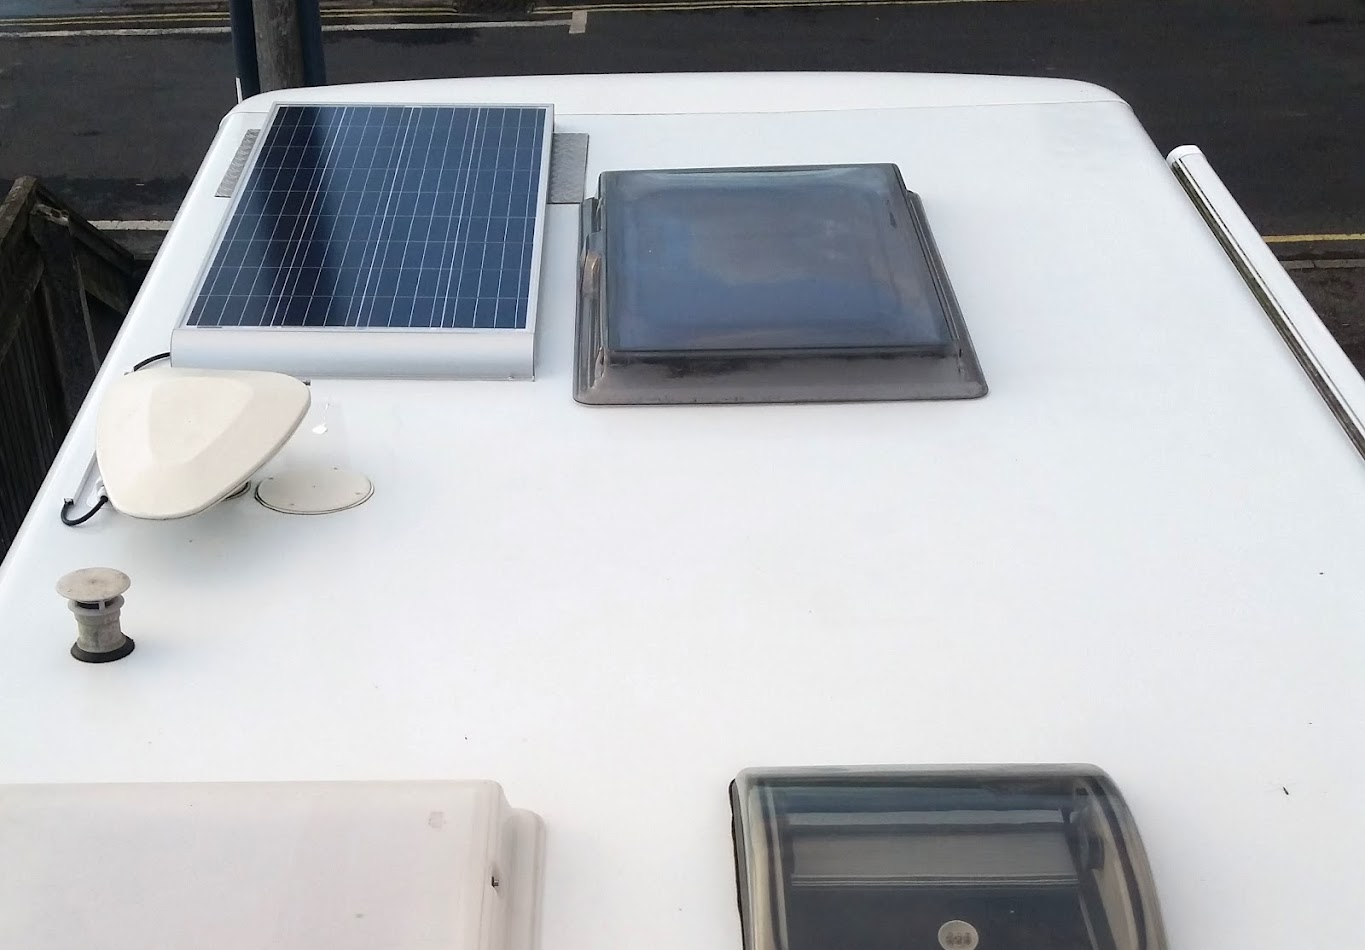 150W solar panel looked big in the shop but now seems insignificant on Humberto's roof, Room for a few more I'd say.